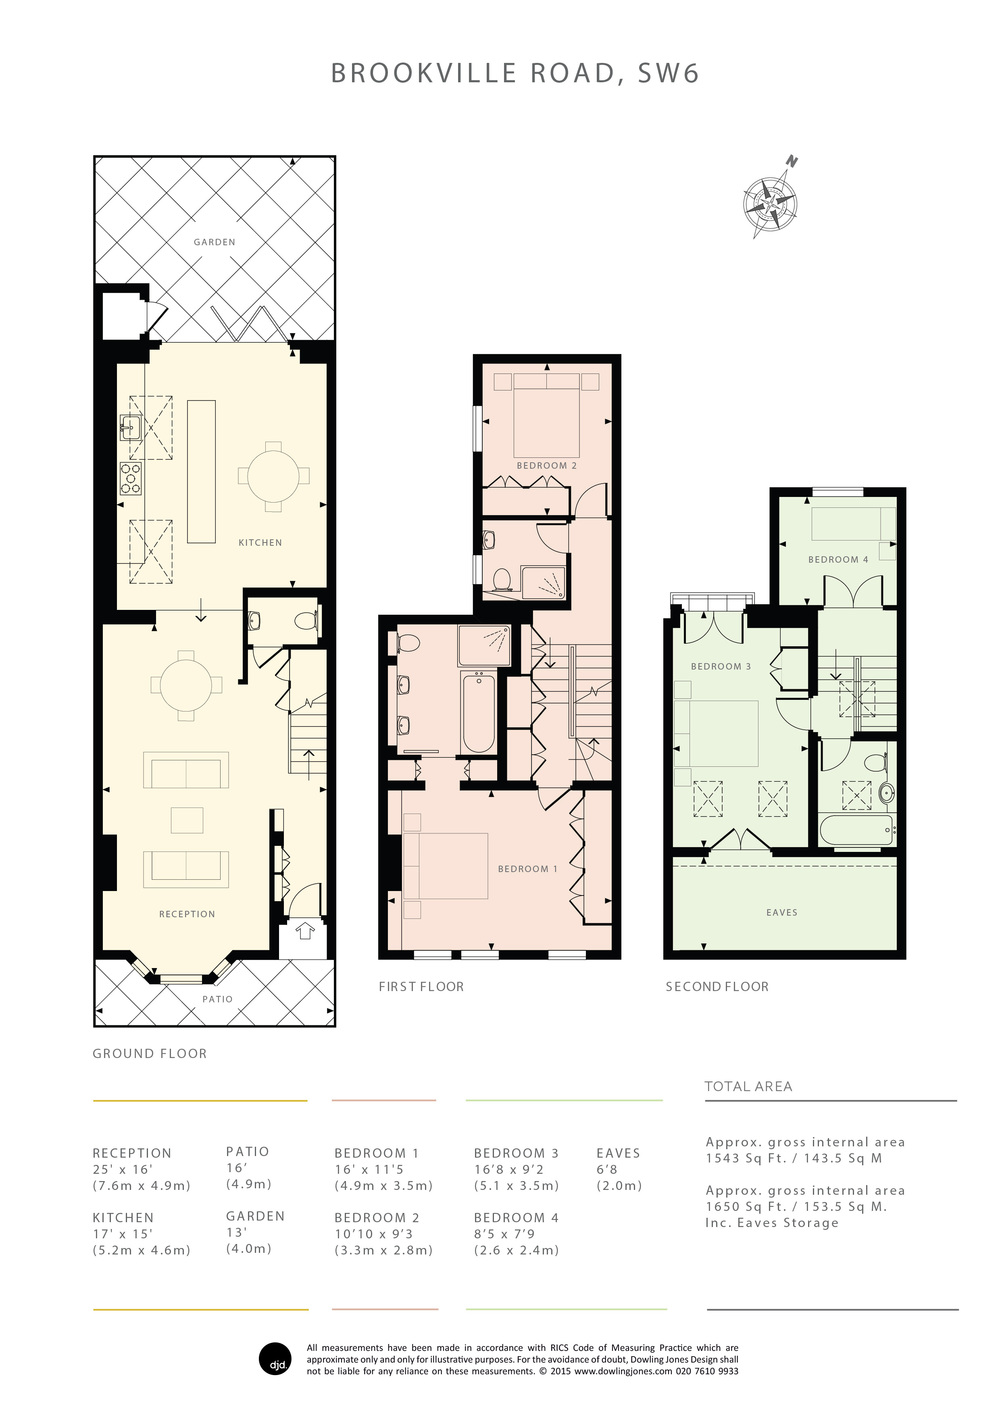 dowling jones brookville road floor plan